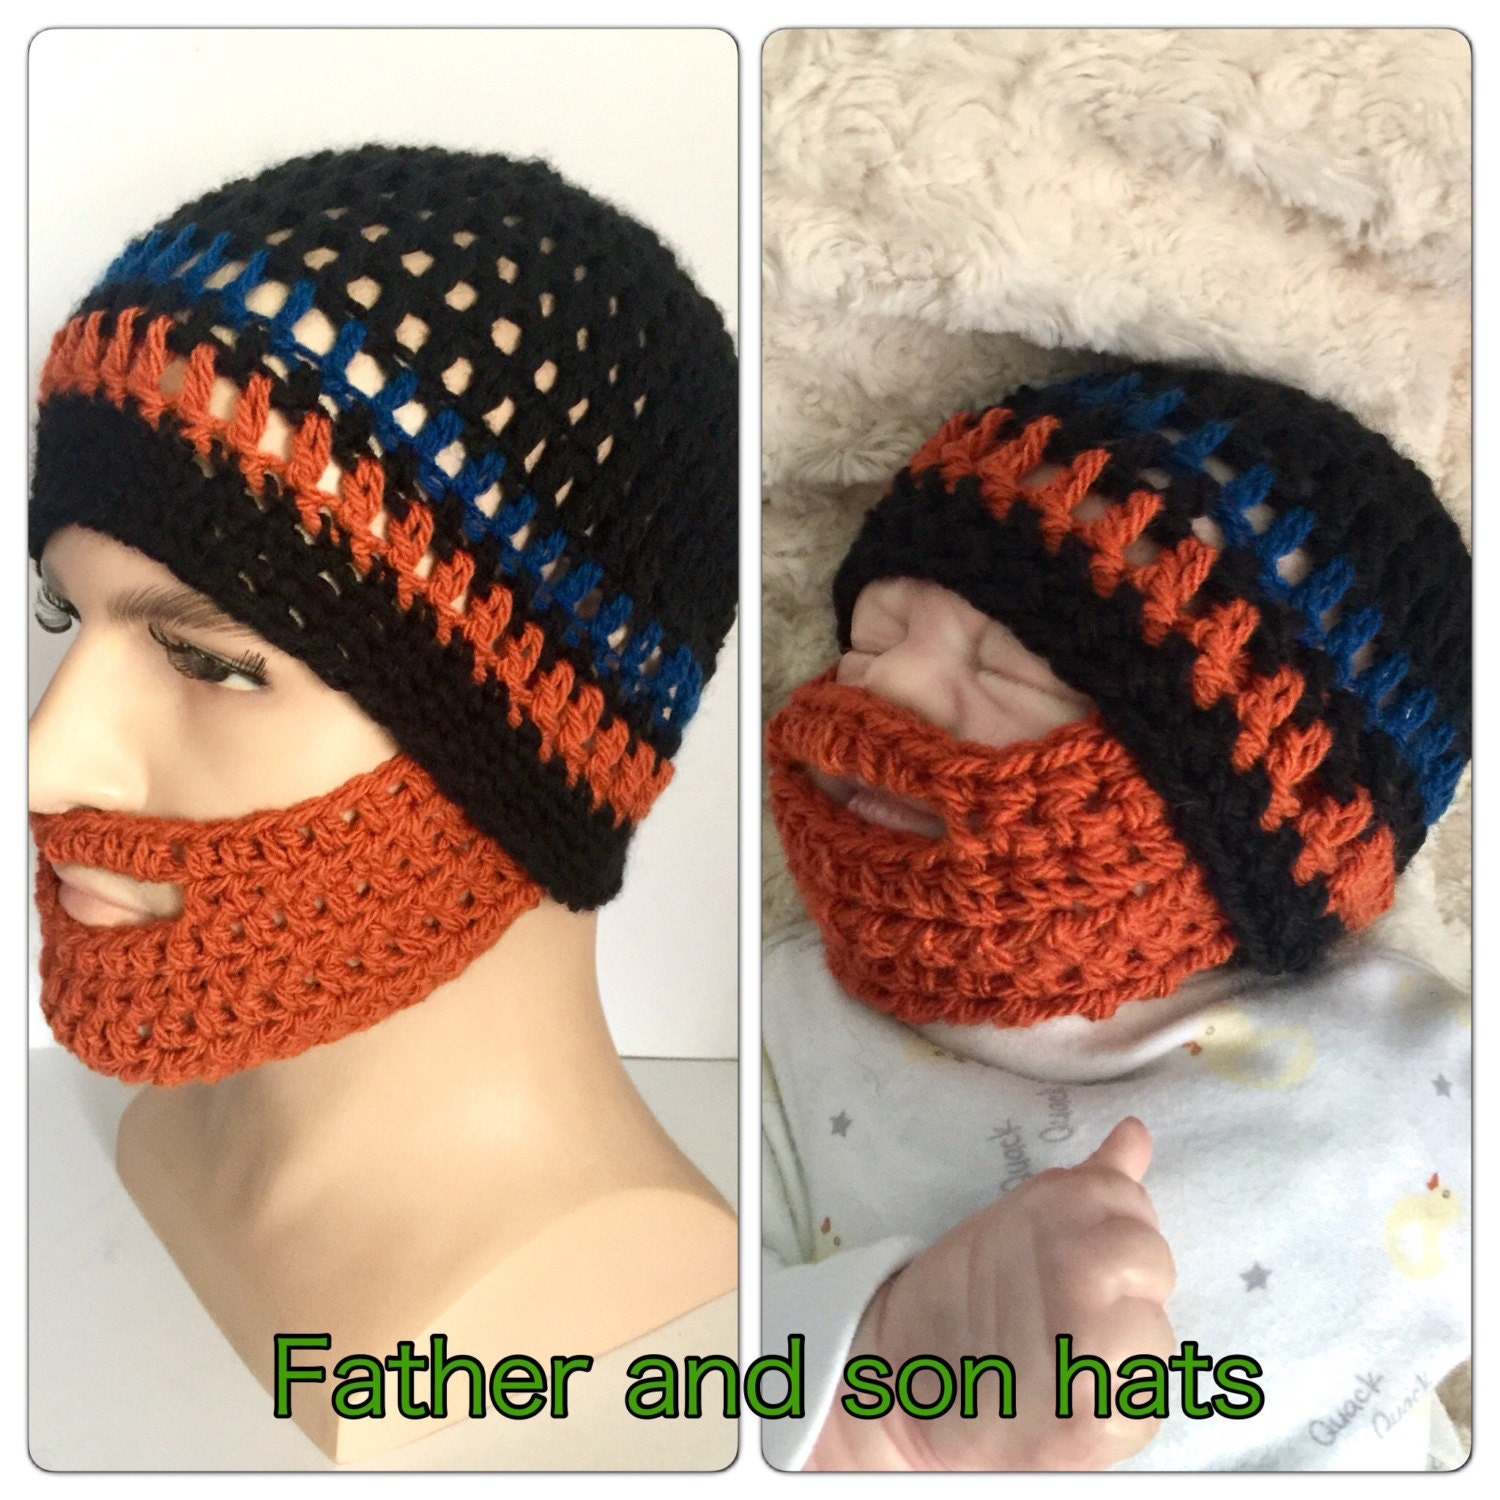 c27b3c4cb35 Father and son matching beard hats Baby boy orange ginger crocheted knitted  hippie beanie designer kids newborn gift bearded lumberjack dadd